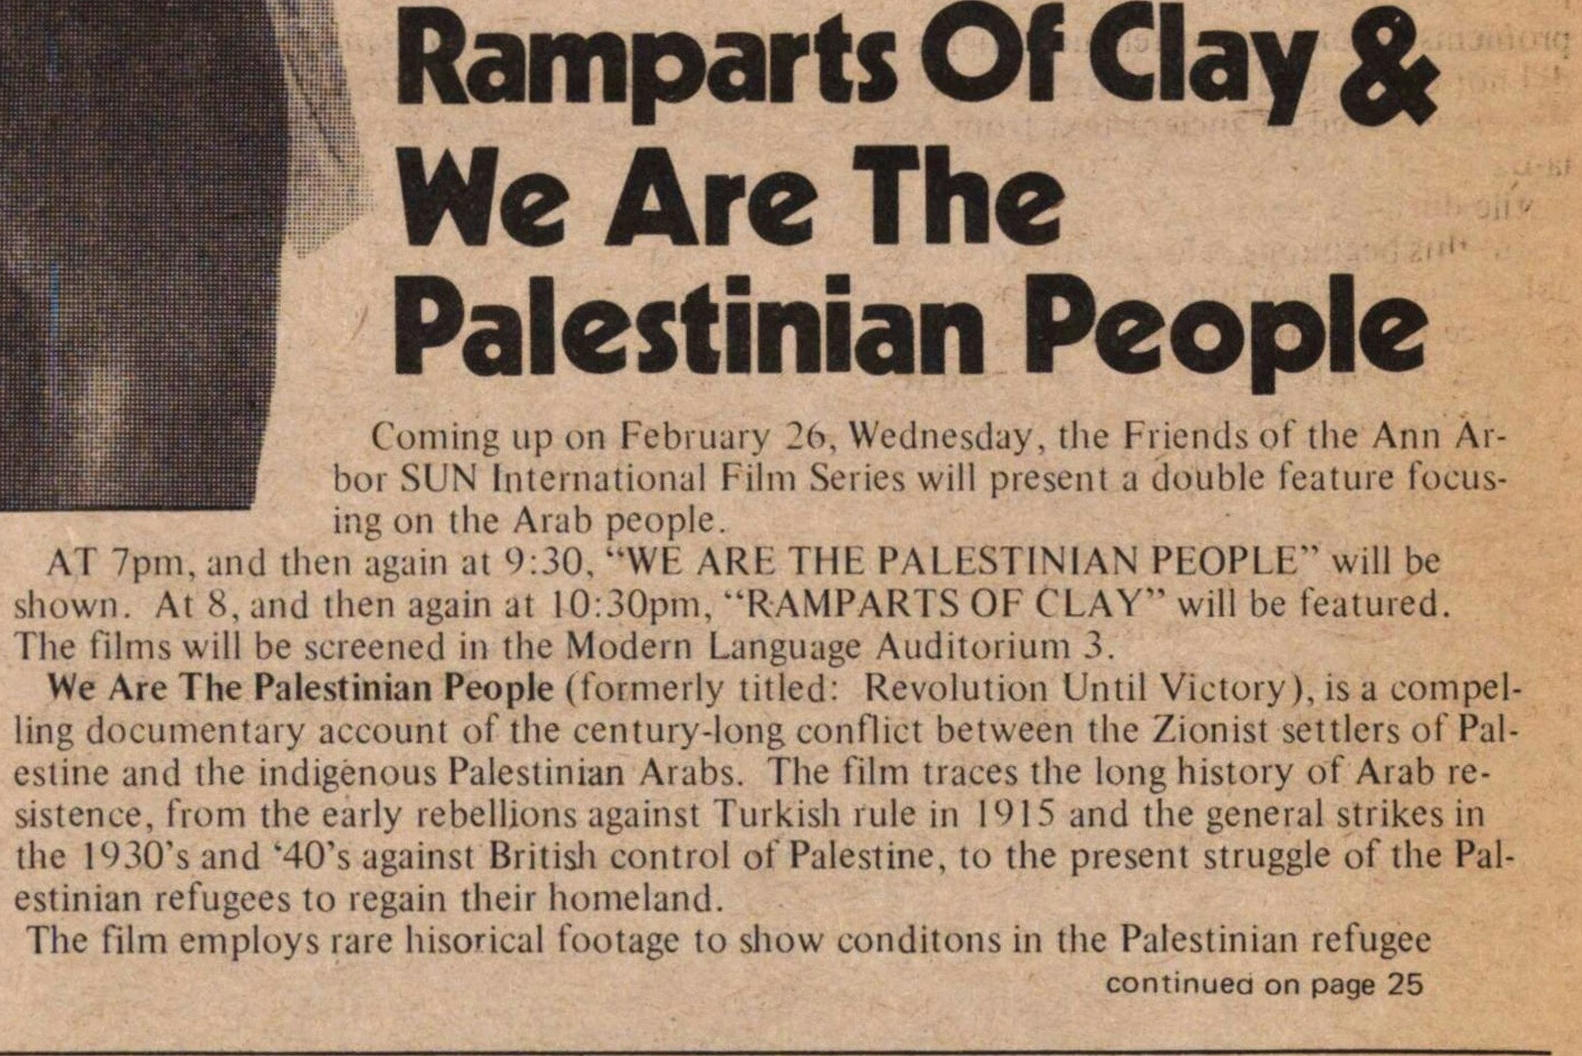 Ramparts Of Clay & We Are The Palestinian People image